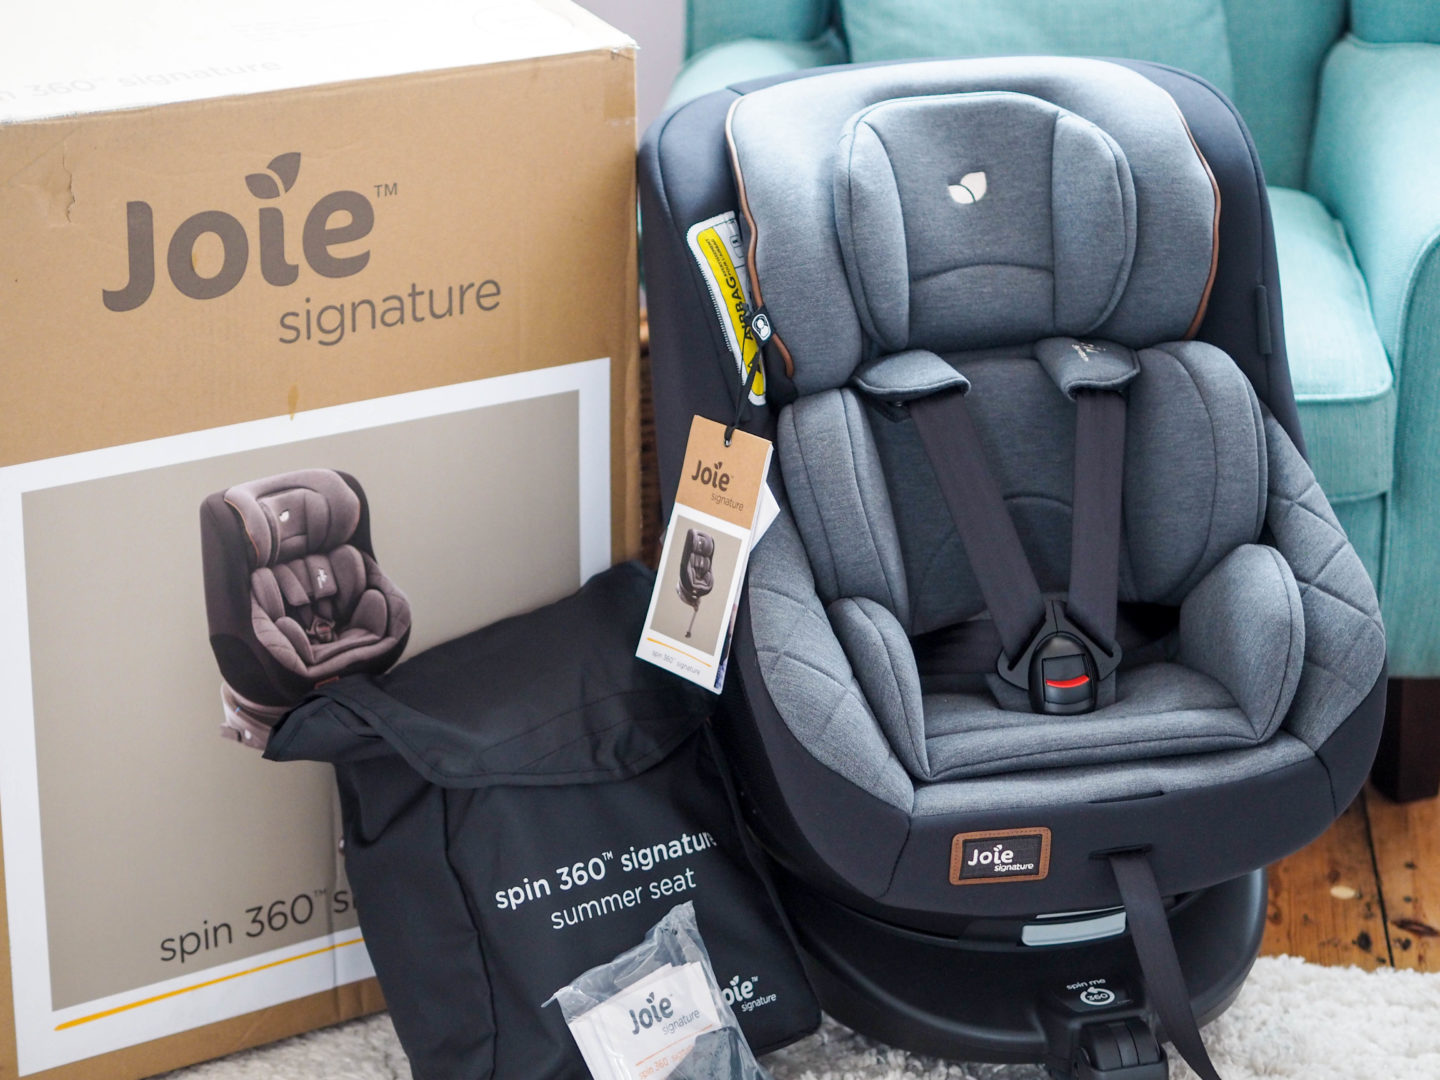 Review: Joie Signature Spin 360 Car Seat